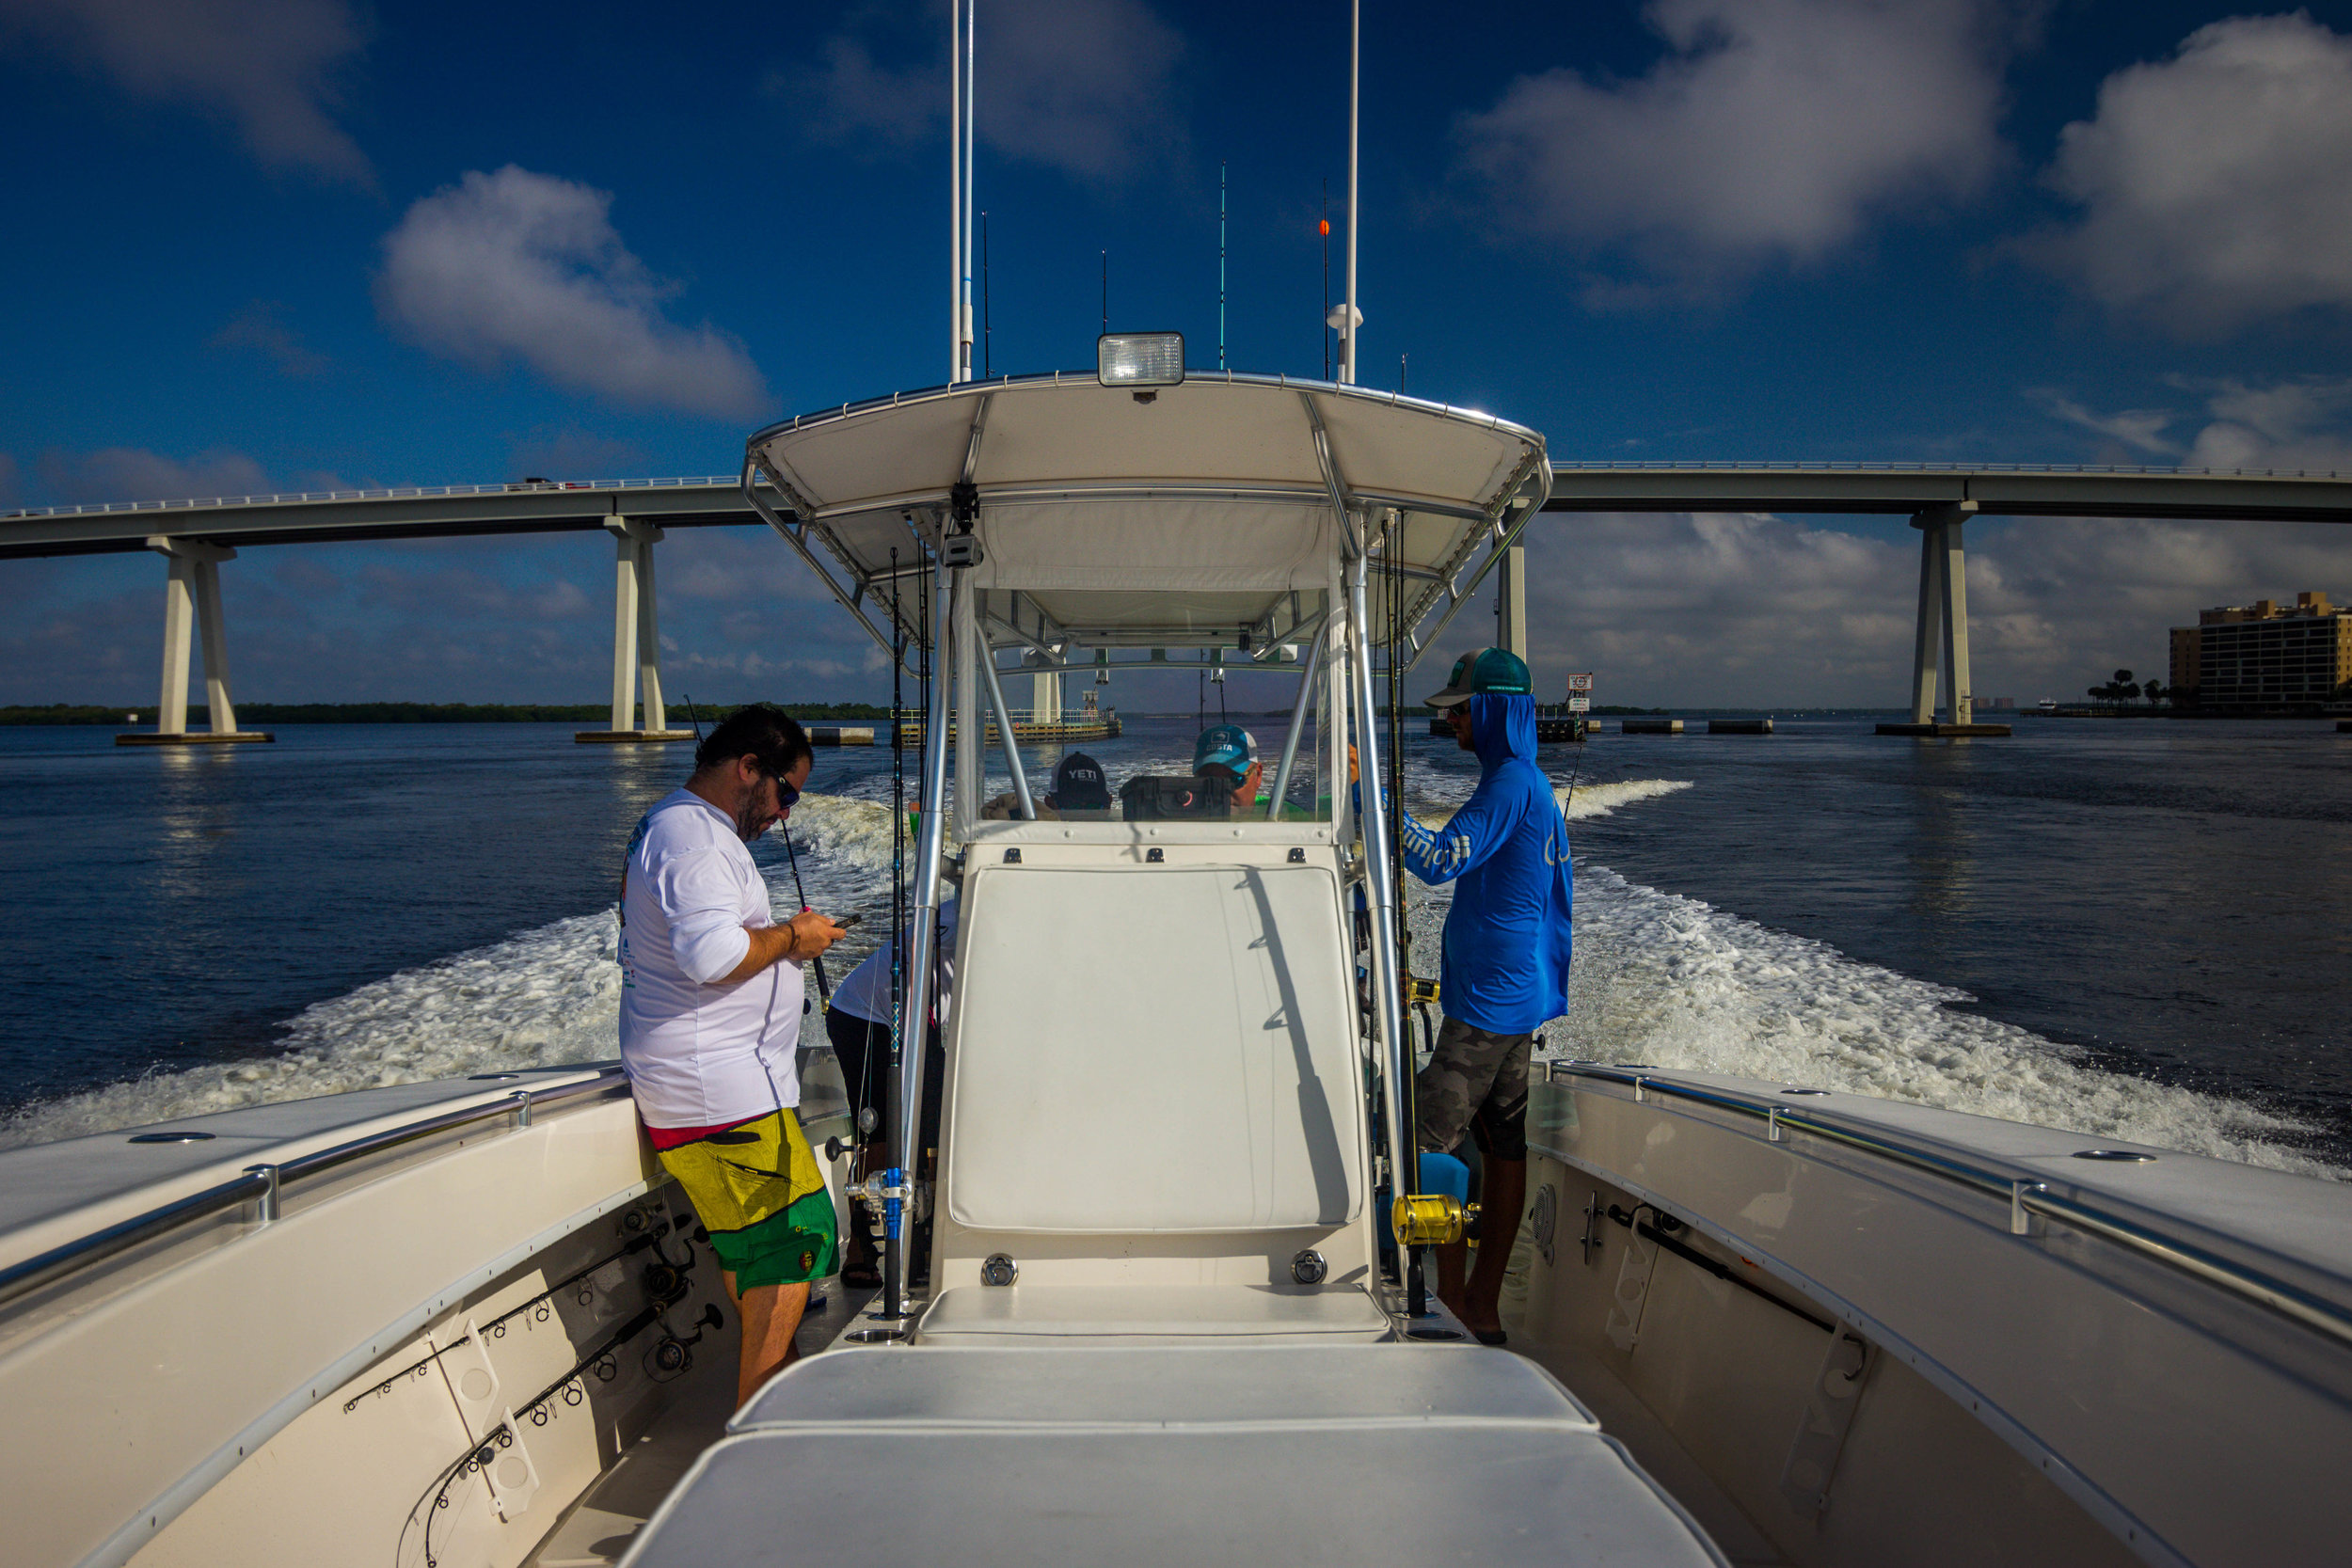 Heading out into the Gulf for another action-packed day with Southern Instinct Fishing Charters.